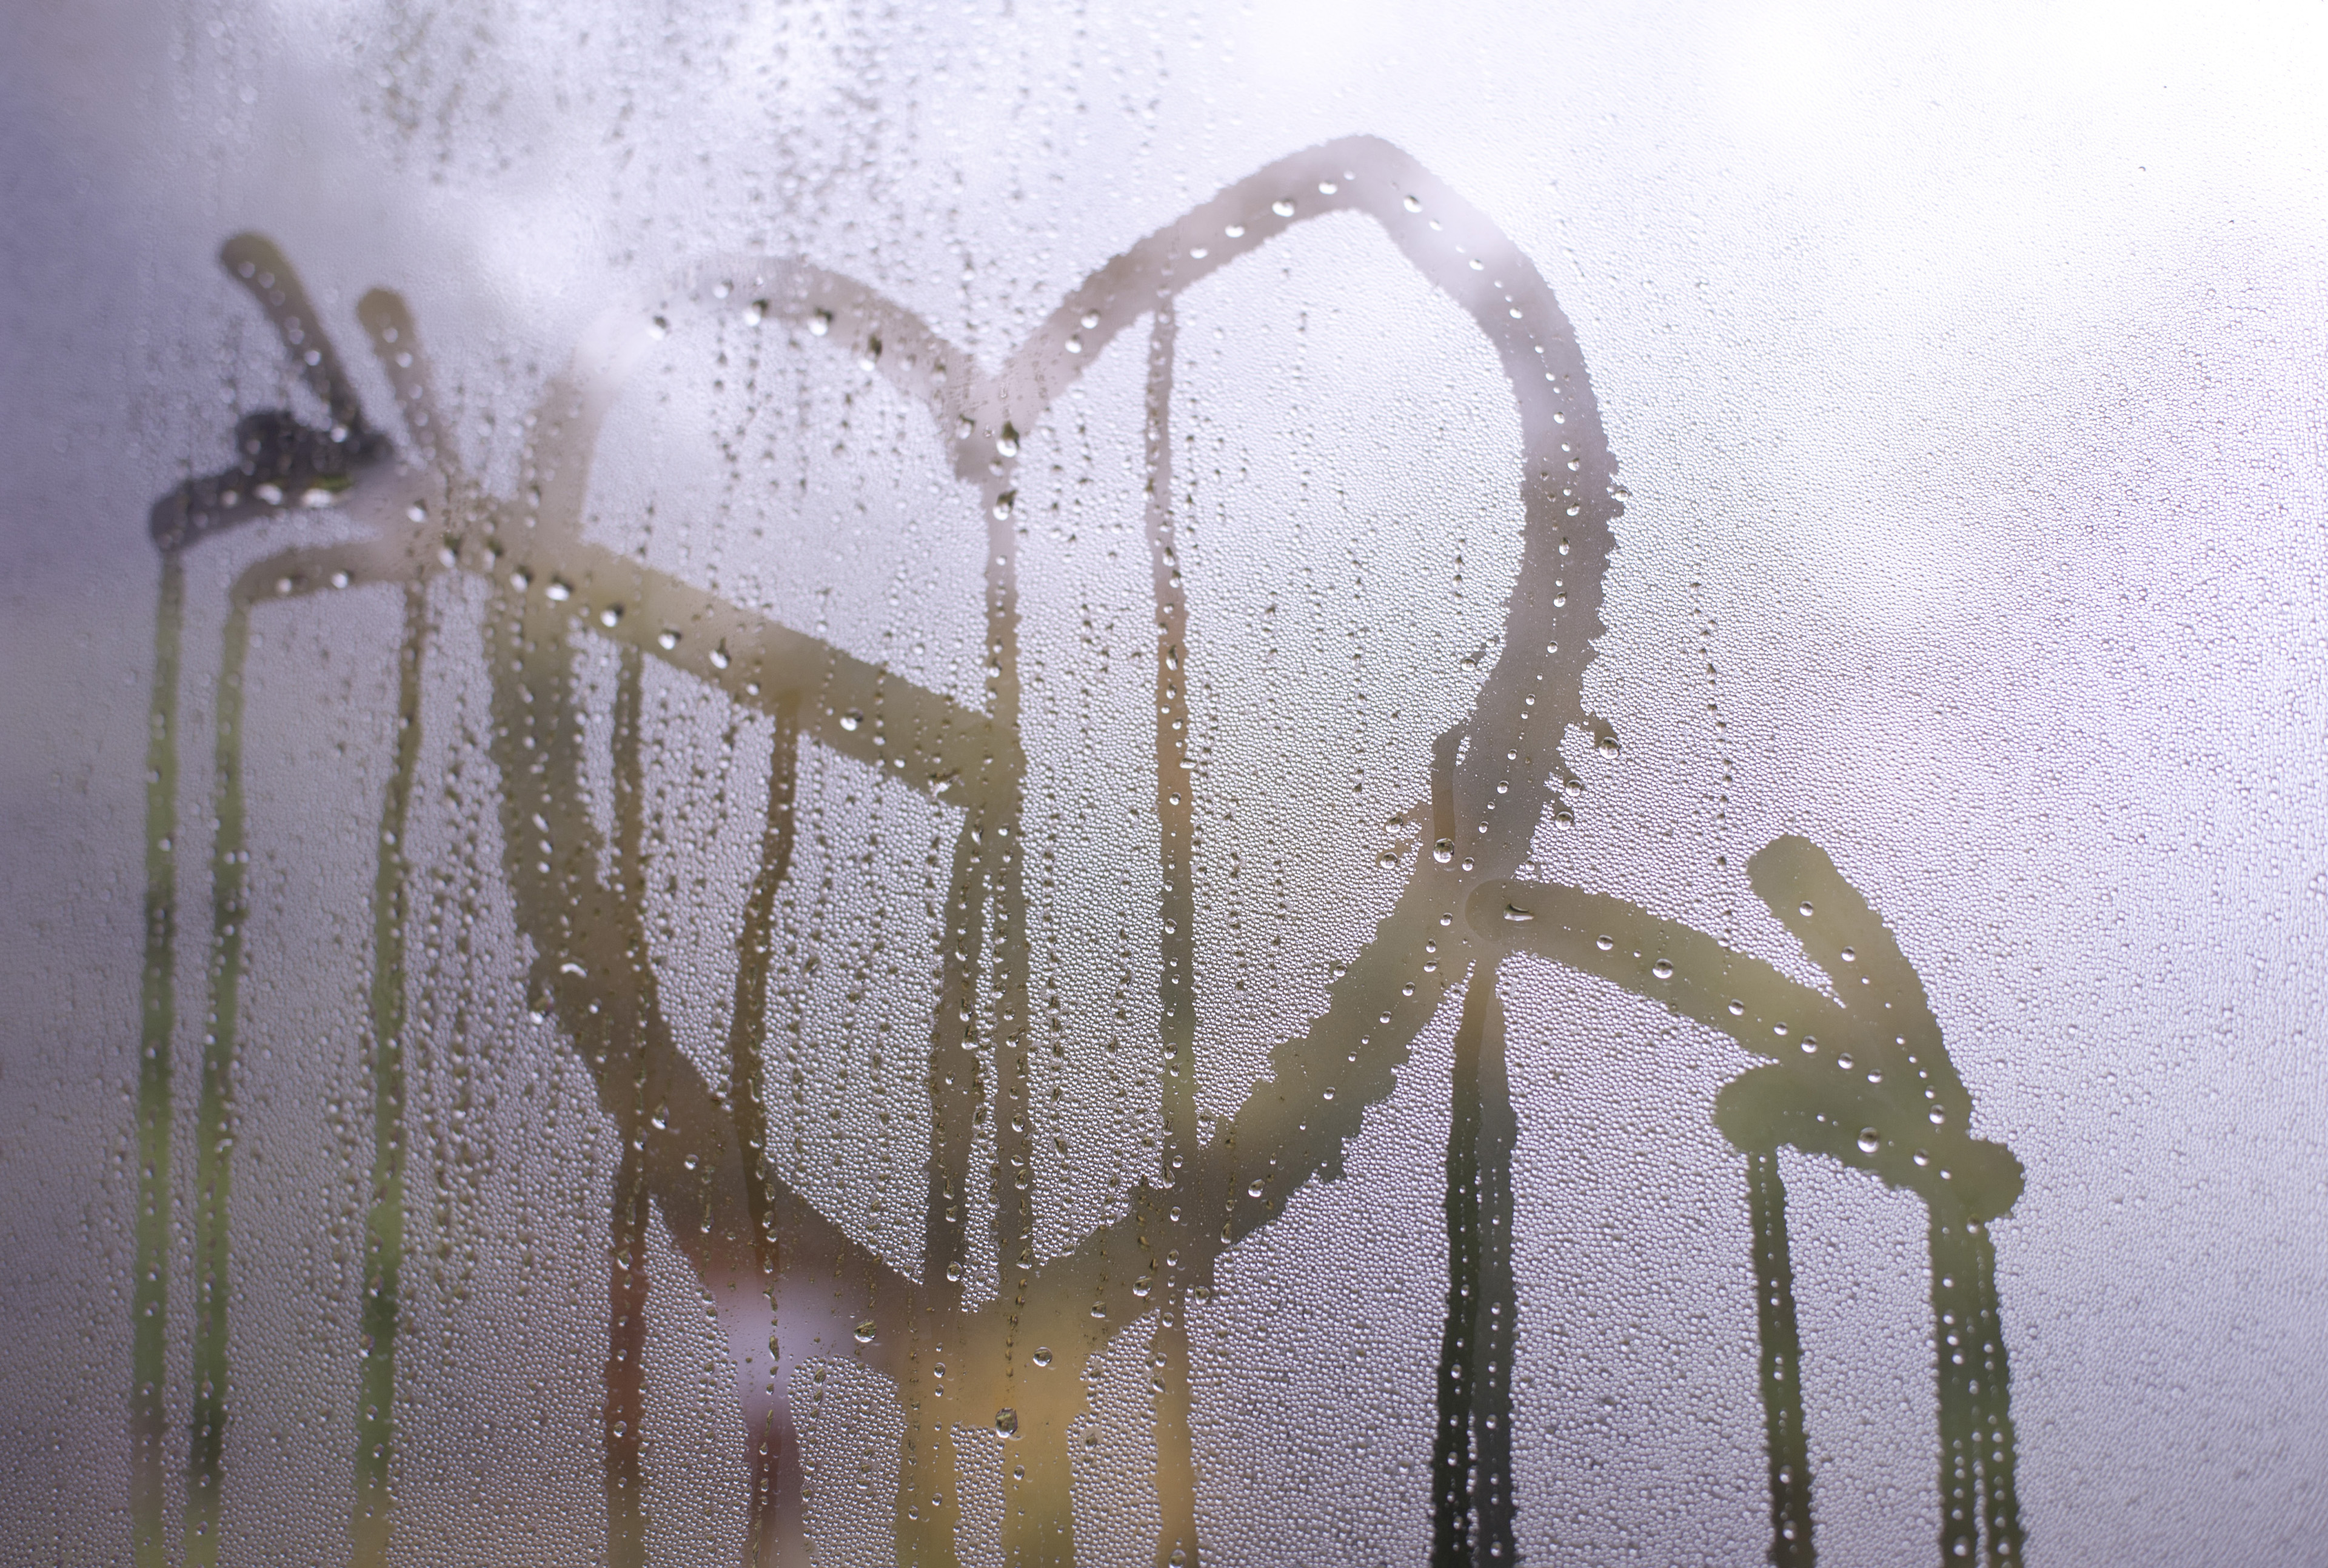 Romantic Valentines heart and Cupids arrow drawn in condensation on a glass windowpane with running rivulets of water for a sentimental message to a sweetheart